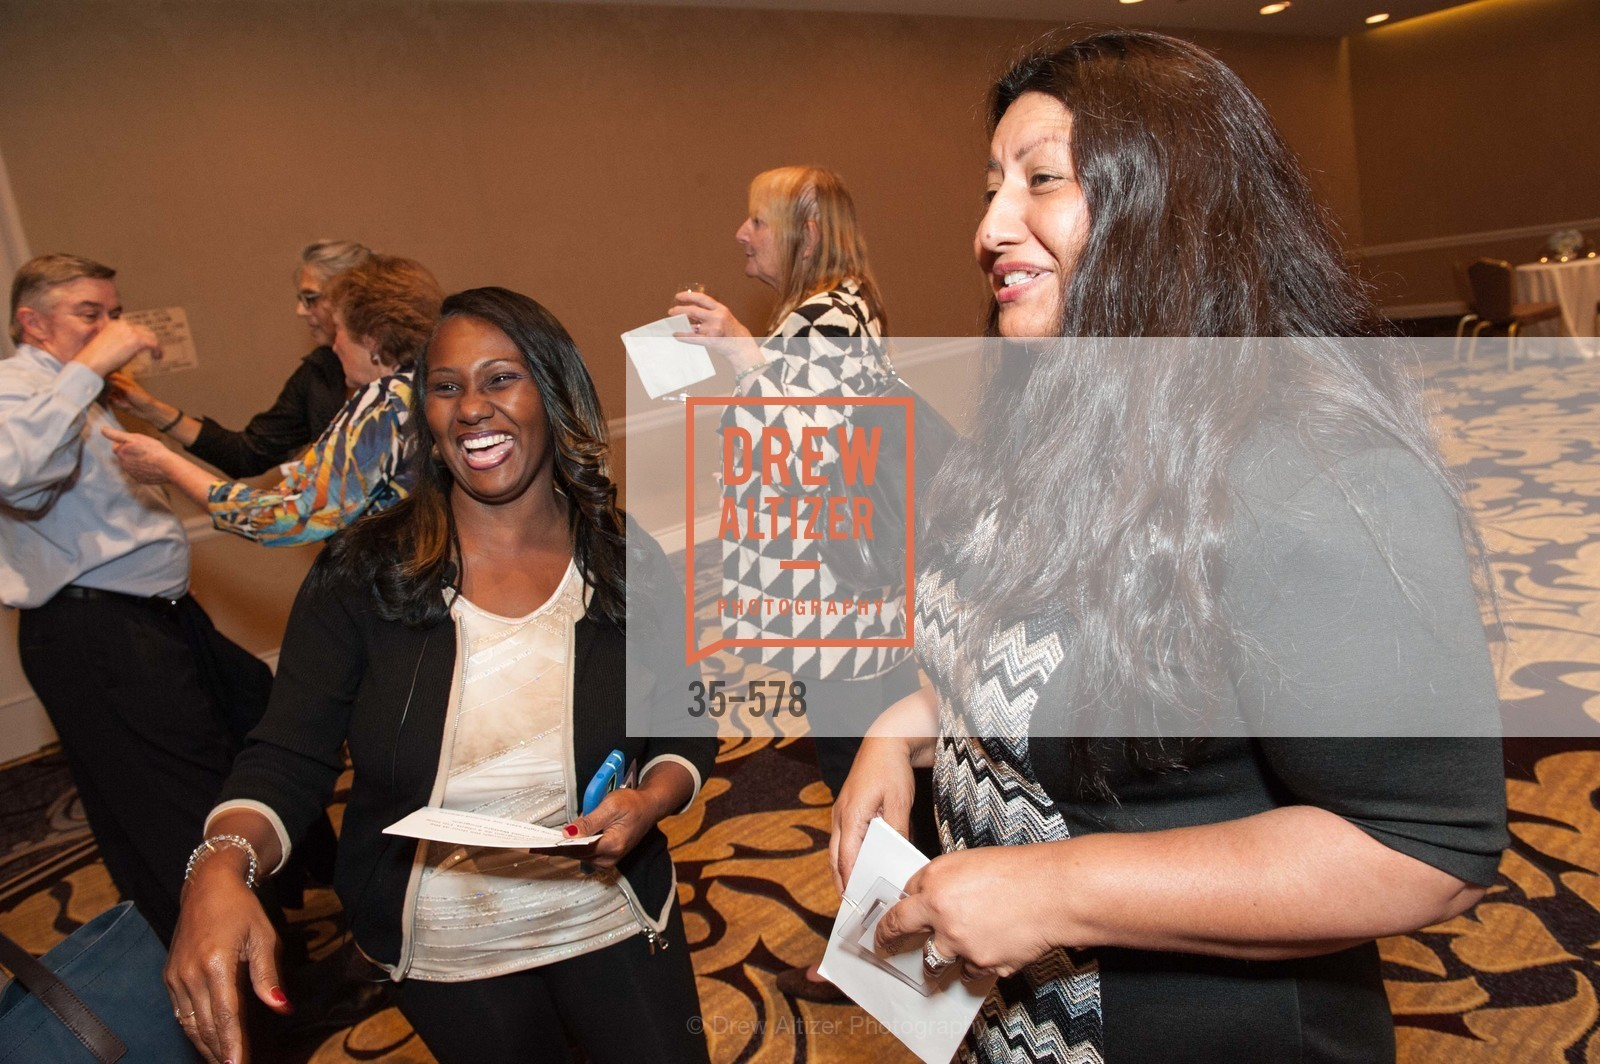 Carla Roberts, Sonya Batres, HOMELESS PRENATAL Annual Luncheon 2014, US, October 1st, 2014,Drew Altizer, Drew Altizer Photography, full-service agency, private events, San Francisco photographer, photographer california